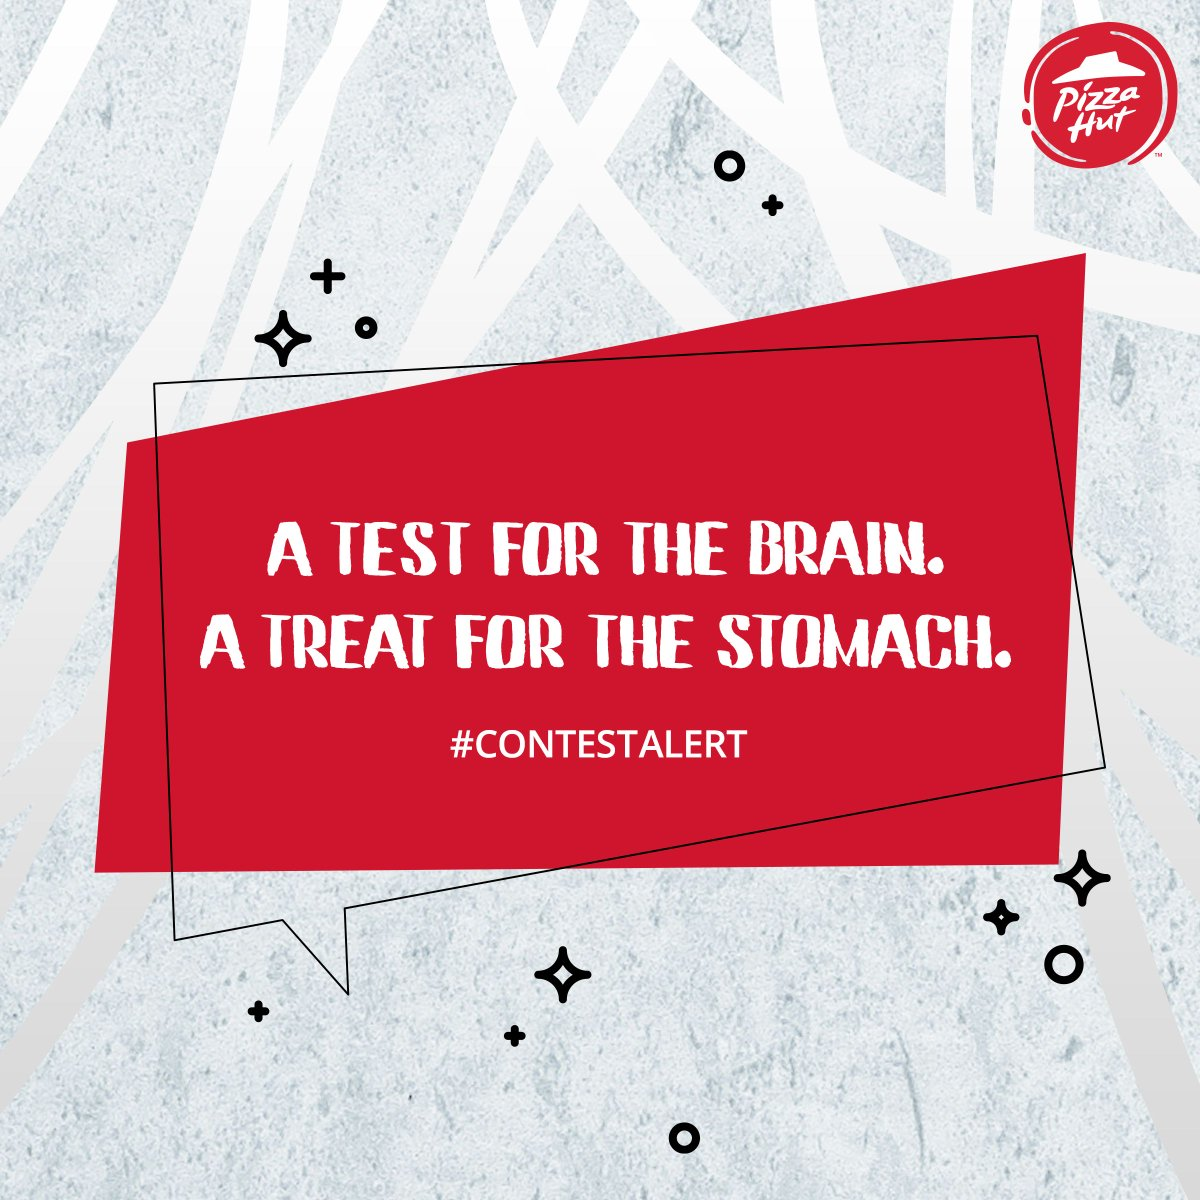 All the Pizza Hut lovers, stay tuned We have something fun planned for you. ContestAlert https t.co EcrVFtBjLq